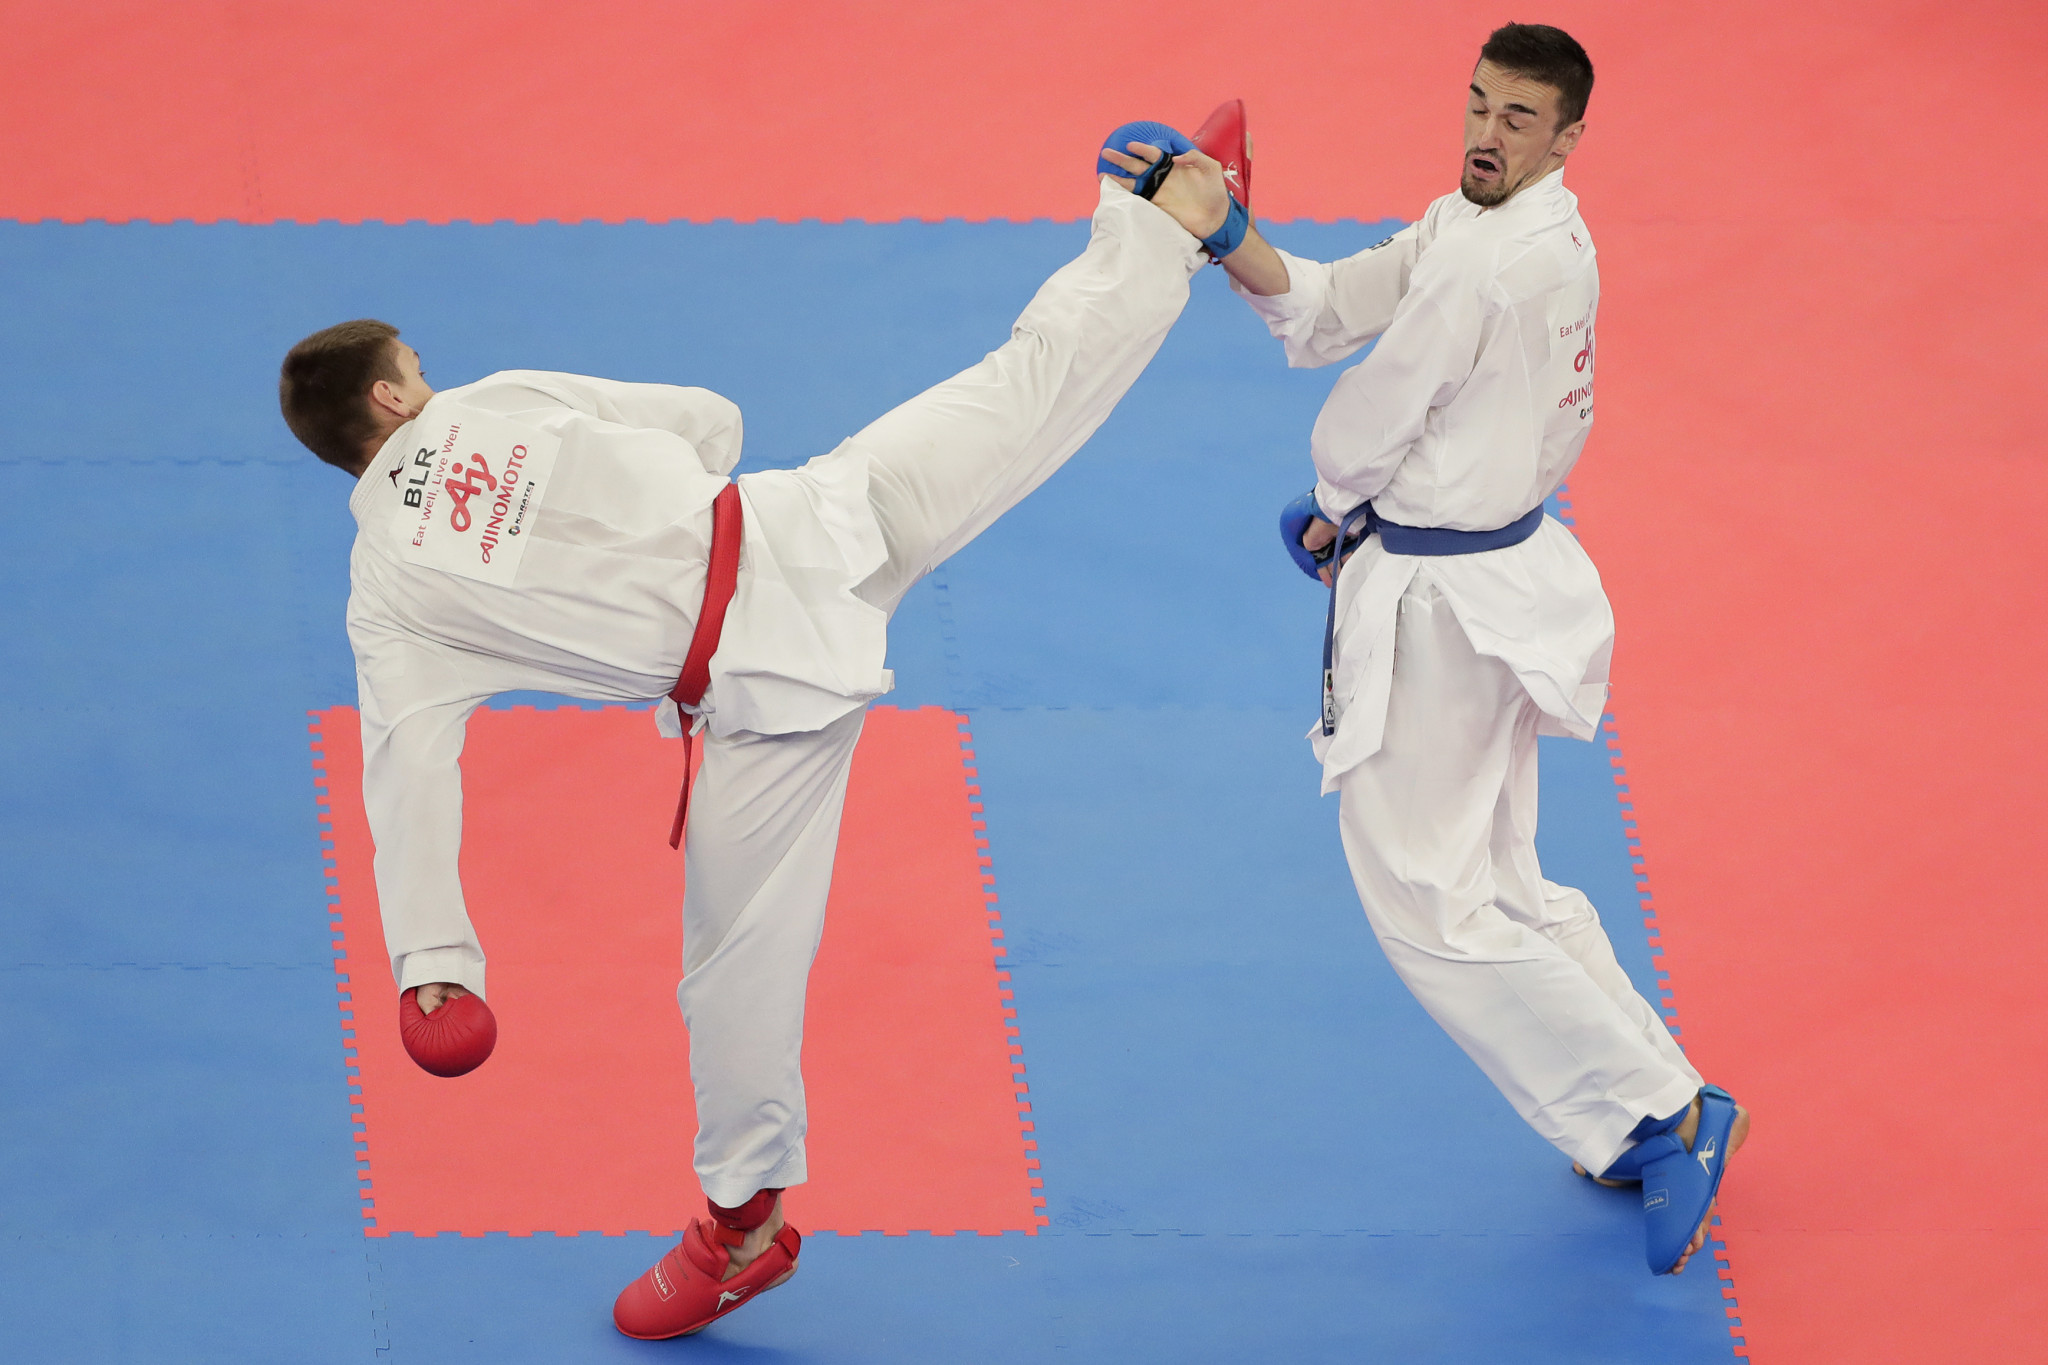 Karate's Olympic debut at Tokyo 2020 will take place at the Budokan ©Getty Images